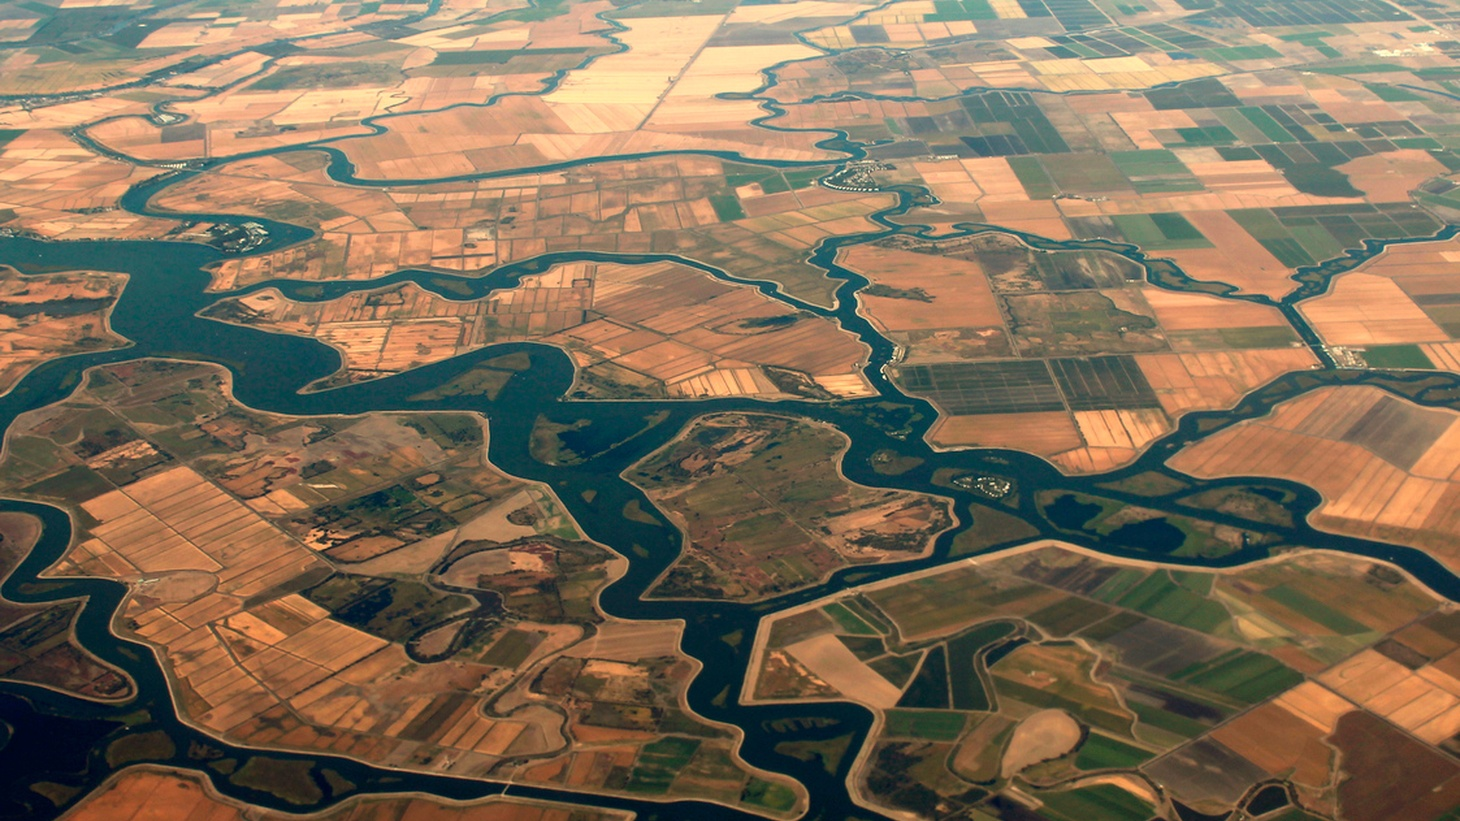 Roughly 1100 miles of levees surround the San Joaquin Delta, holding back water from farmland and homes in part of the Central Valley. Some were built one hundred years ago; many aren't up to code. Engineers are worried an earthquake or strong El Niño storm could damage the levees and cause Katrina­like flooding. And drinking water for Californians could be at risk.